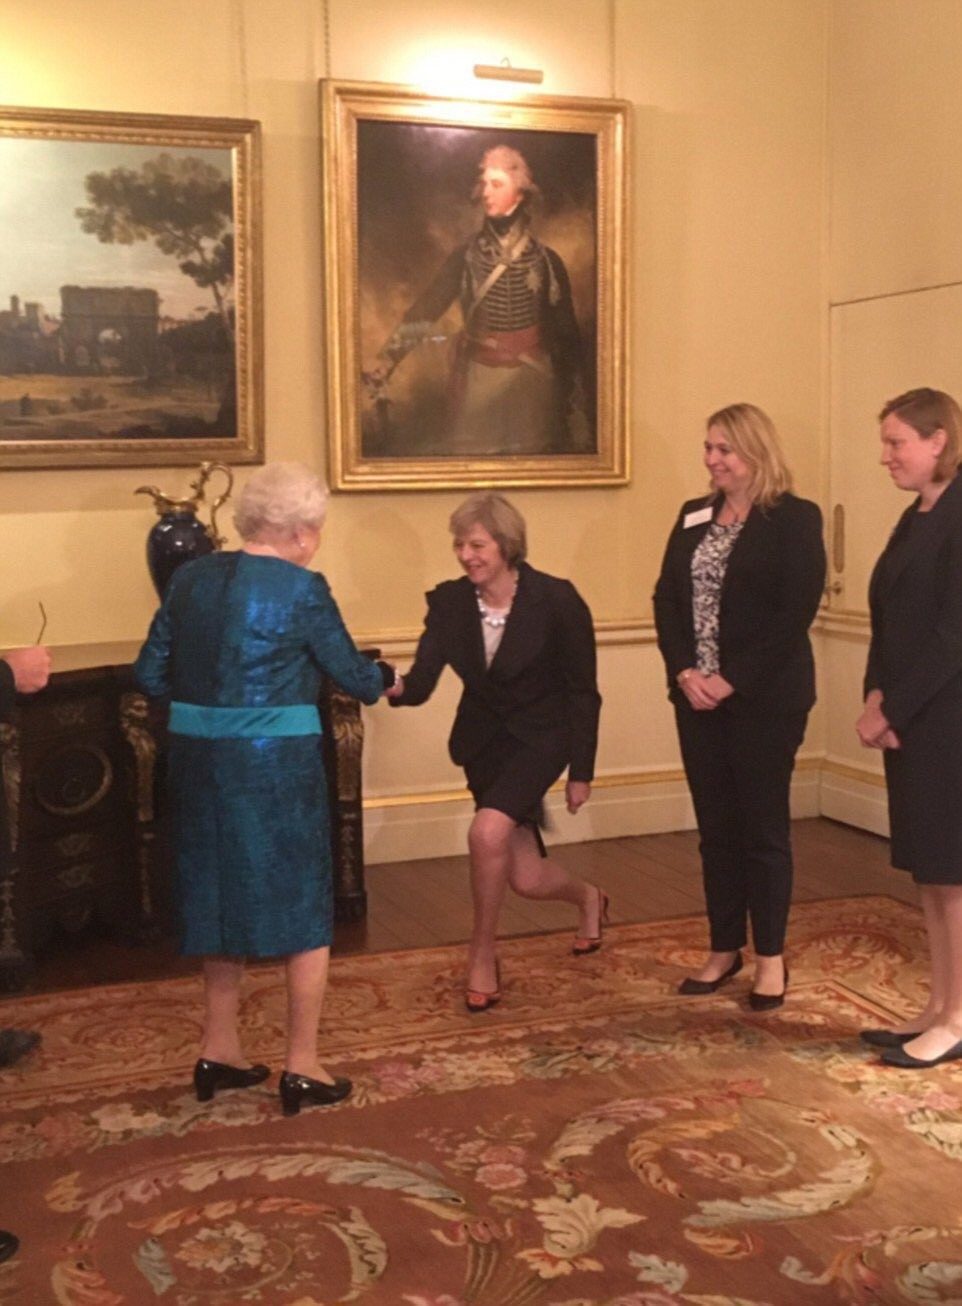 Theresa May Kneels To Greet Members Of The Royal Family